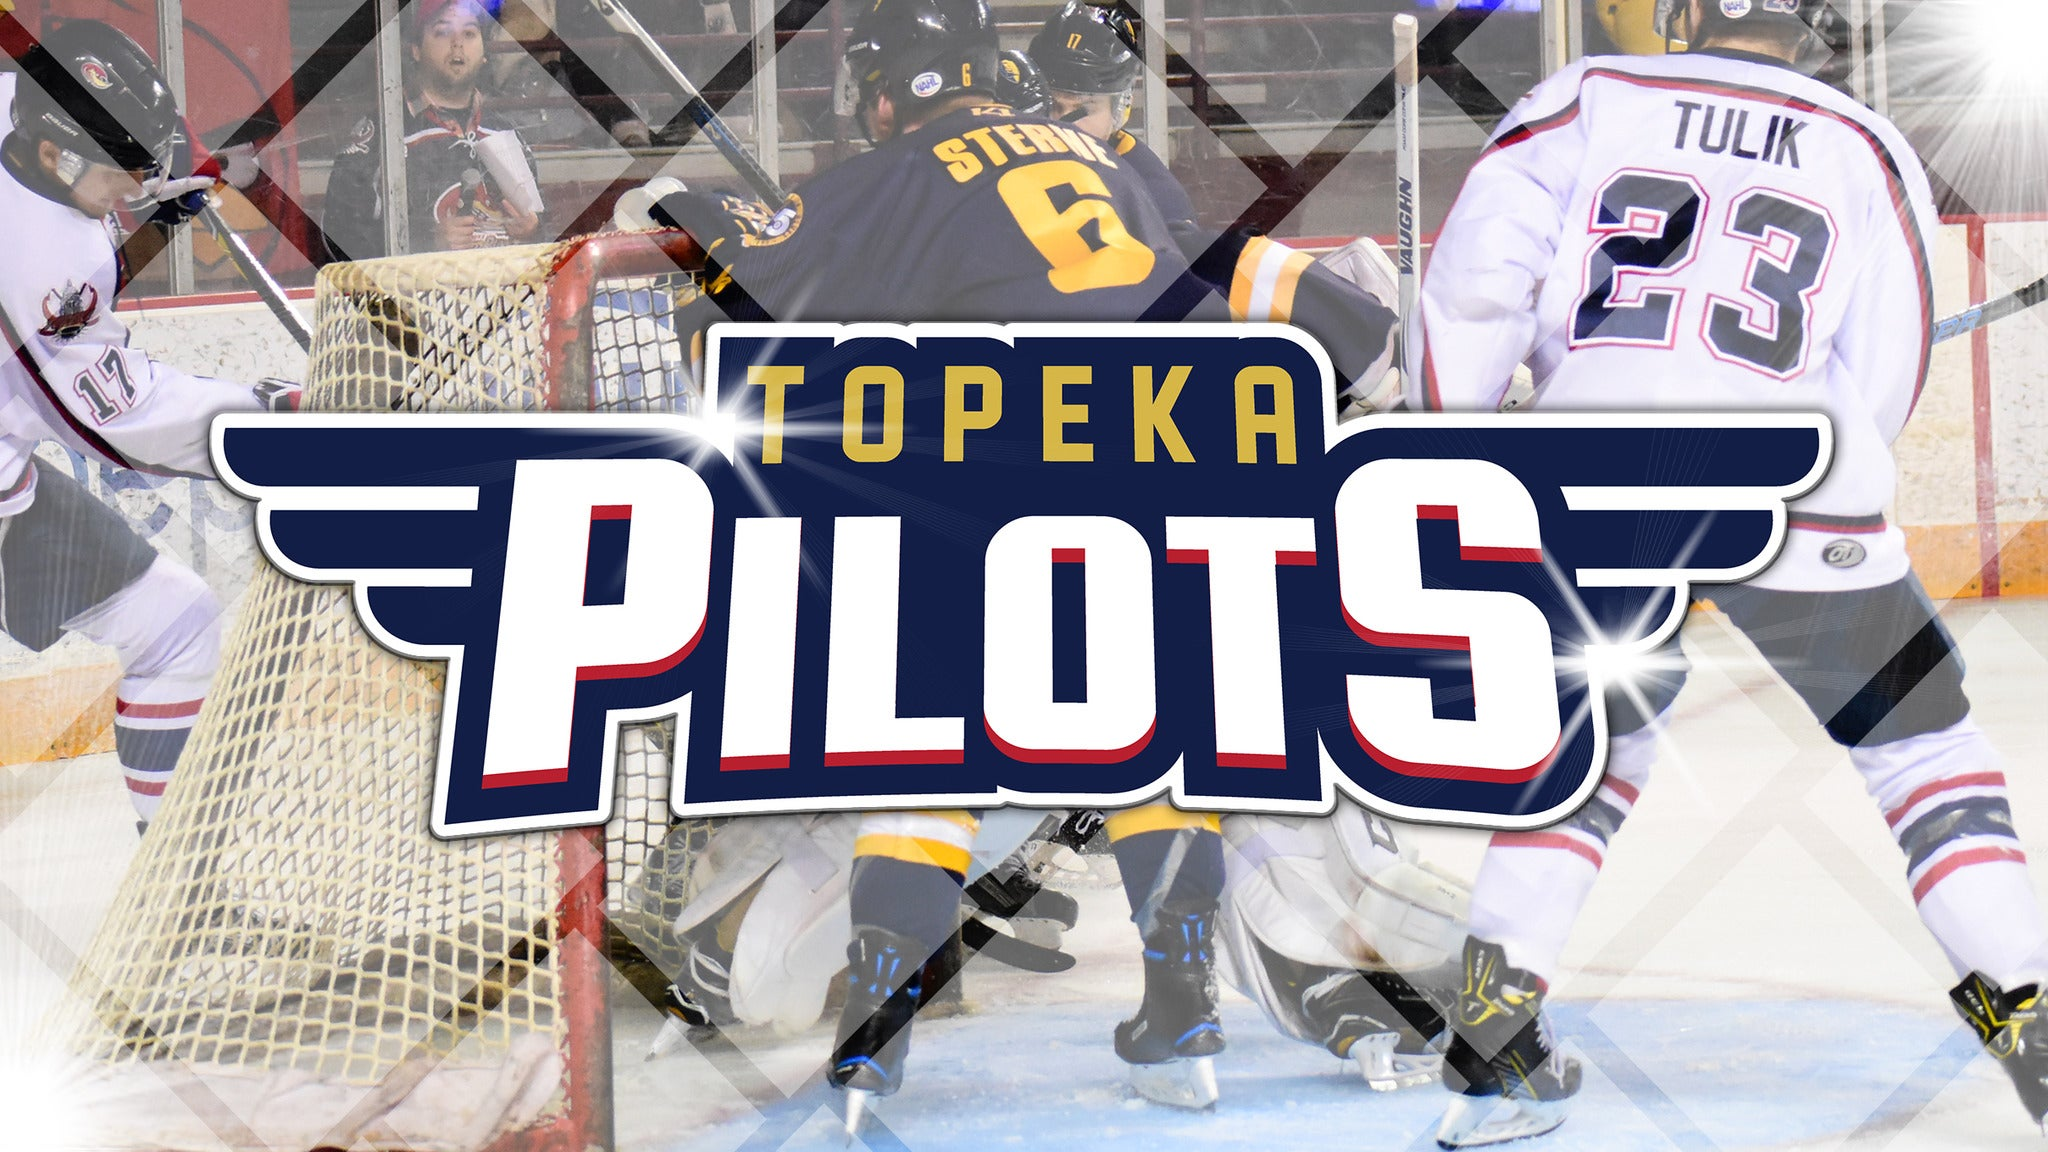 Topeka Pilots vs. Amarillo Bulls at Kansas Expocentre